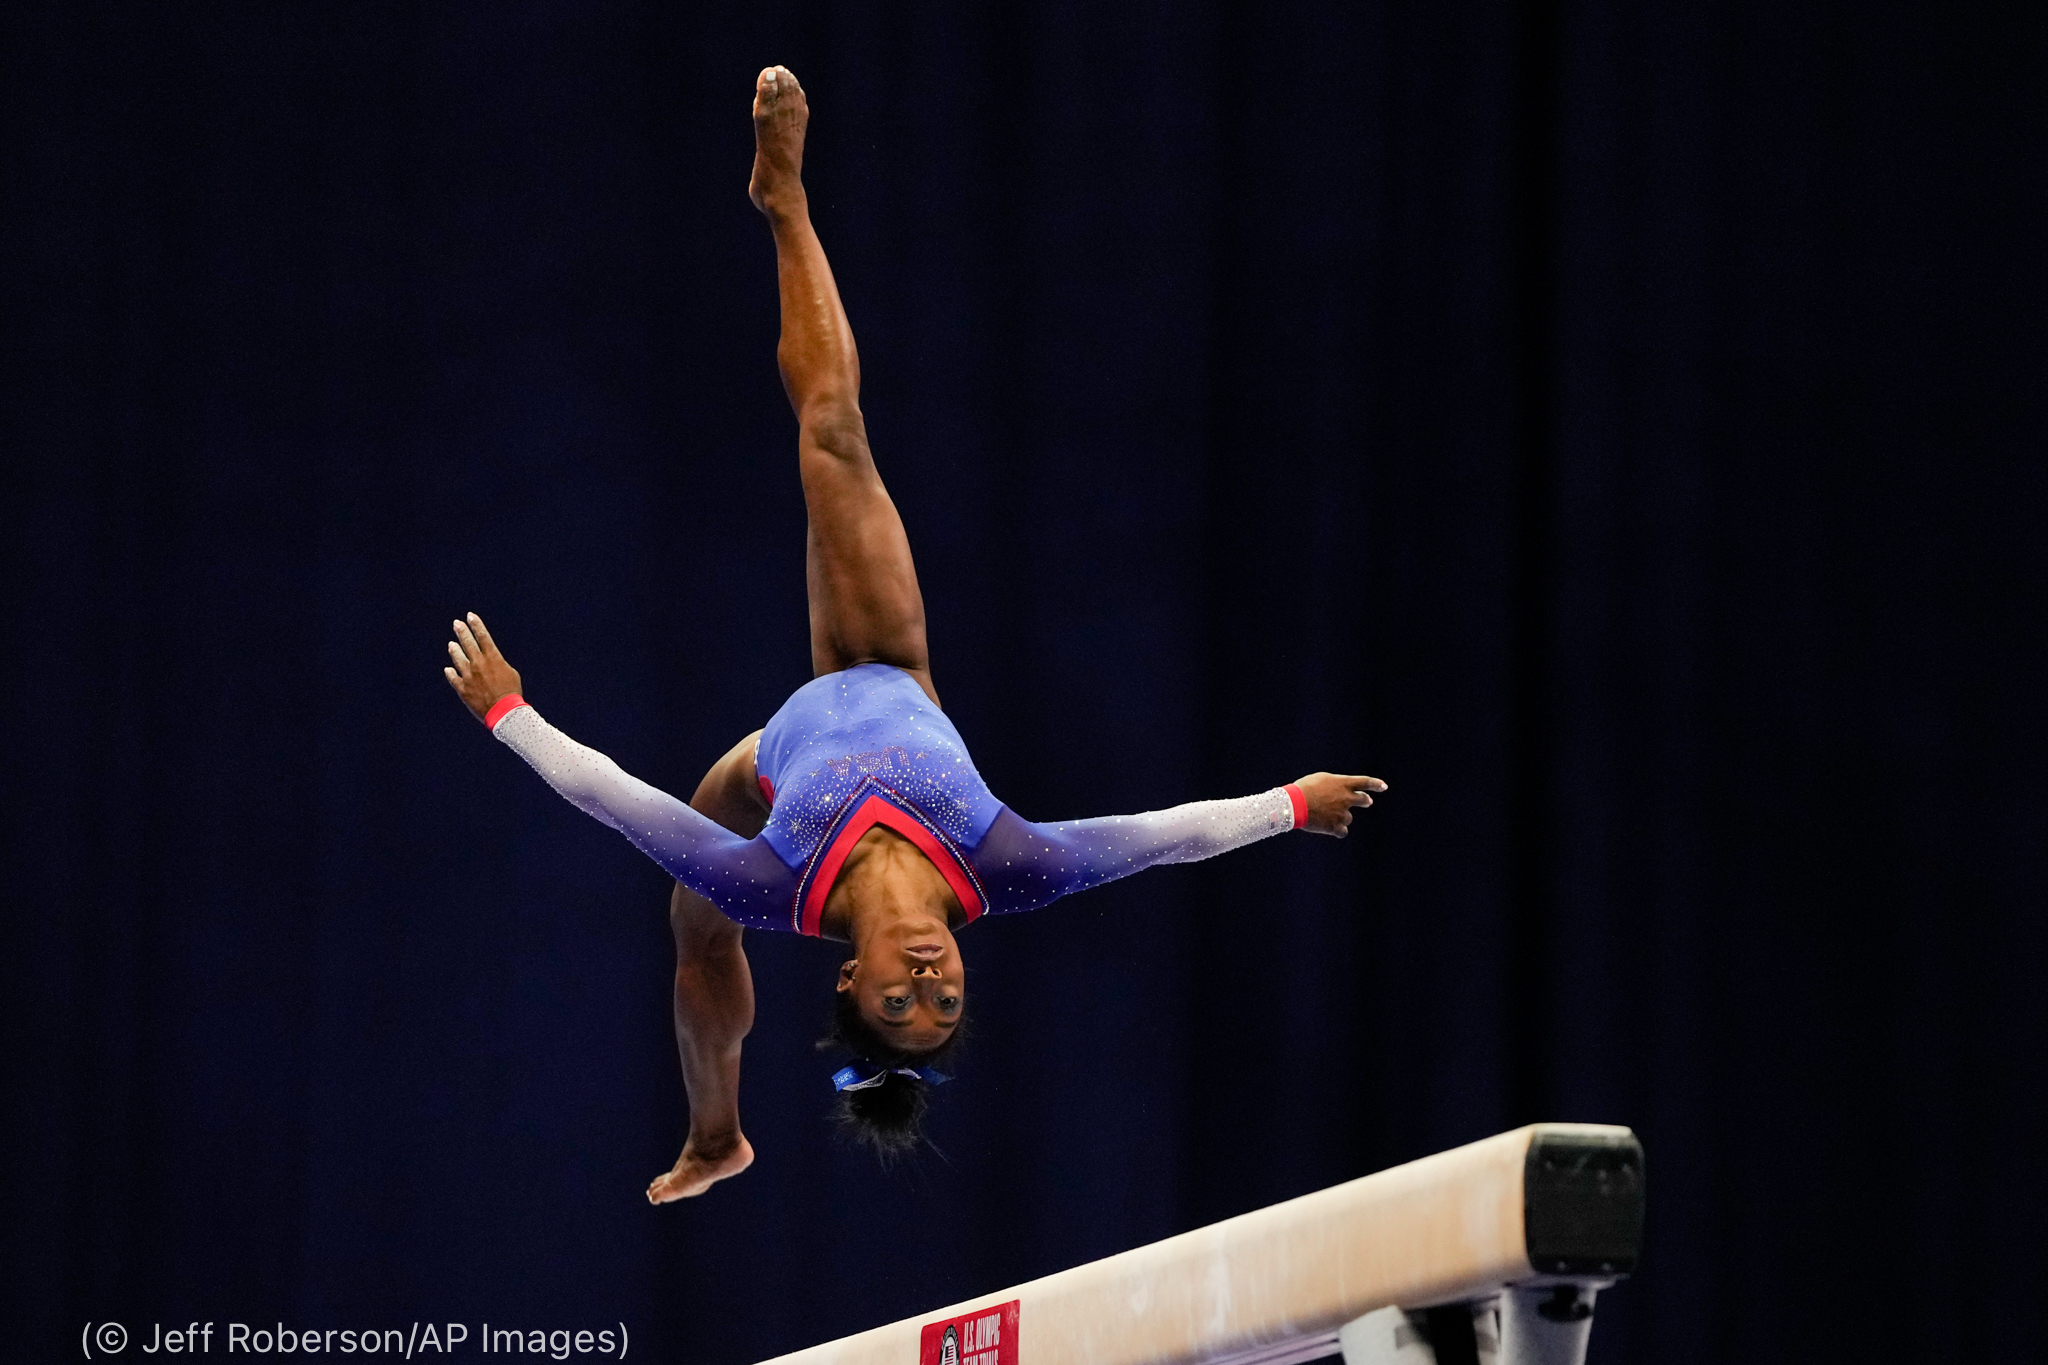 Simone Biles flipping in air over balance beam (© Jeff Roberson/AP Images)